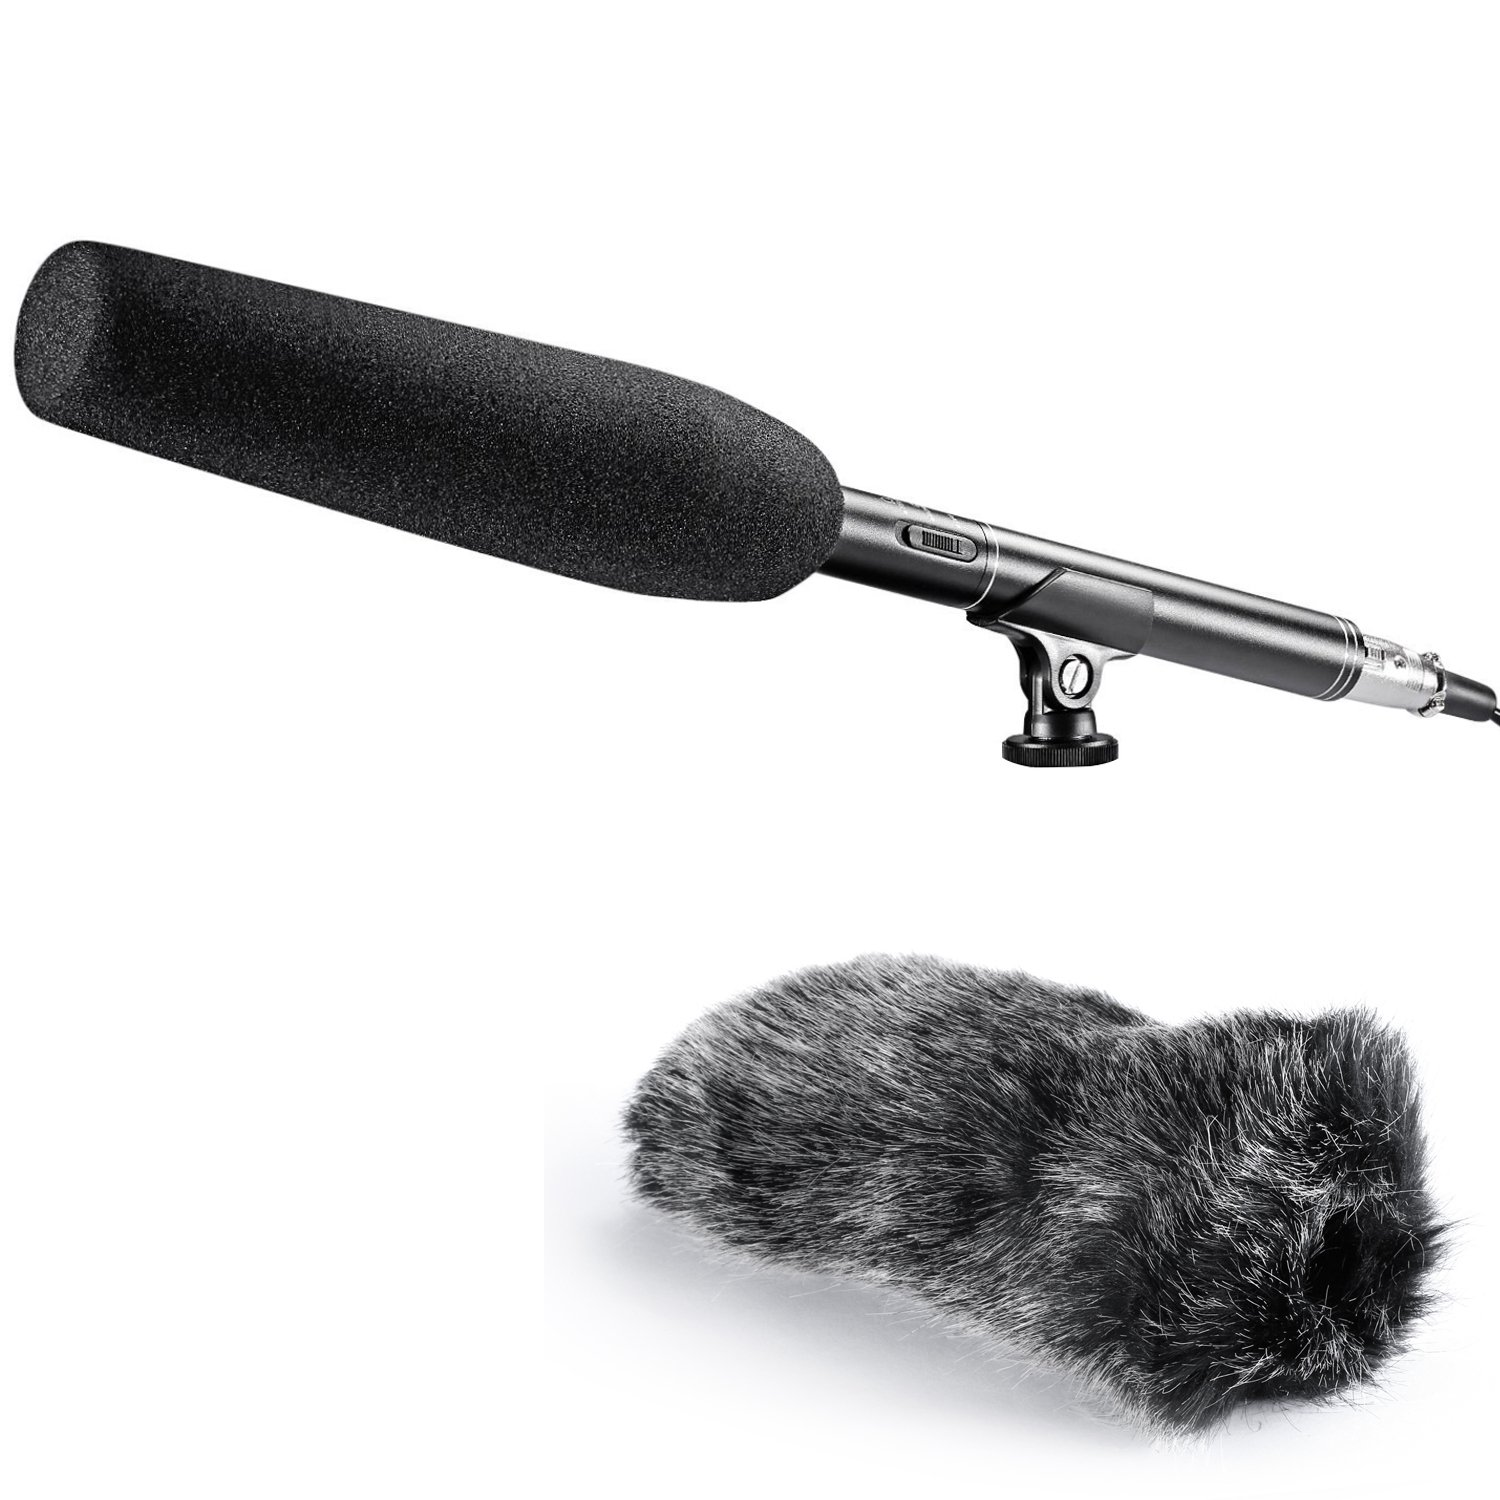 Neewer Uni-Directional Mono Shotgun Condenser Microphone 10.47 inches/26.6 centimeters with Mic Holders,Anti-Wind Foam Cap,XLR Cable and Furry Windscreen Muff for Canon Nikon DSLR and Video Camcorders